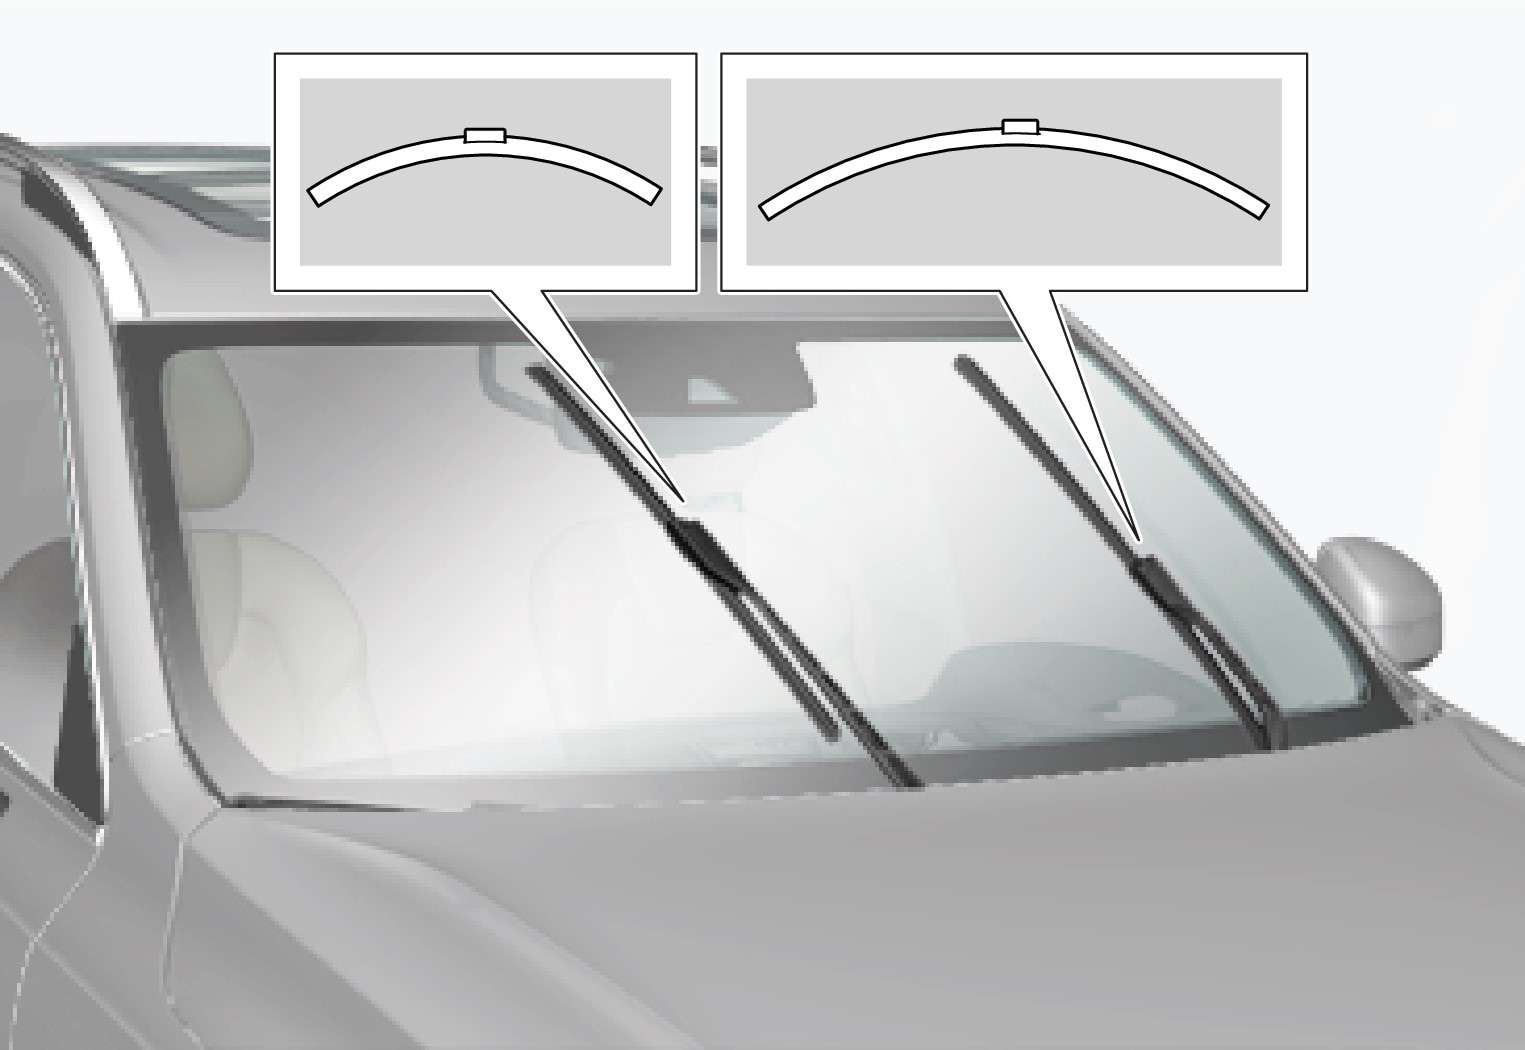 P5-1507-Wiper blades diffrent length